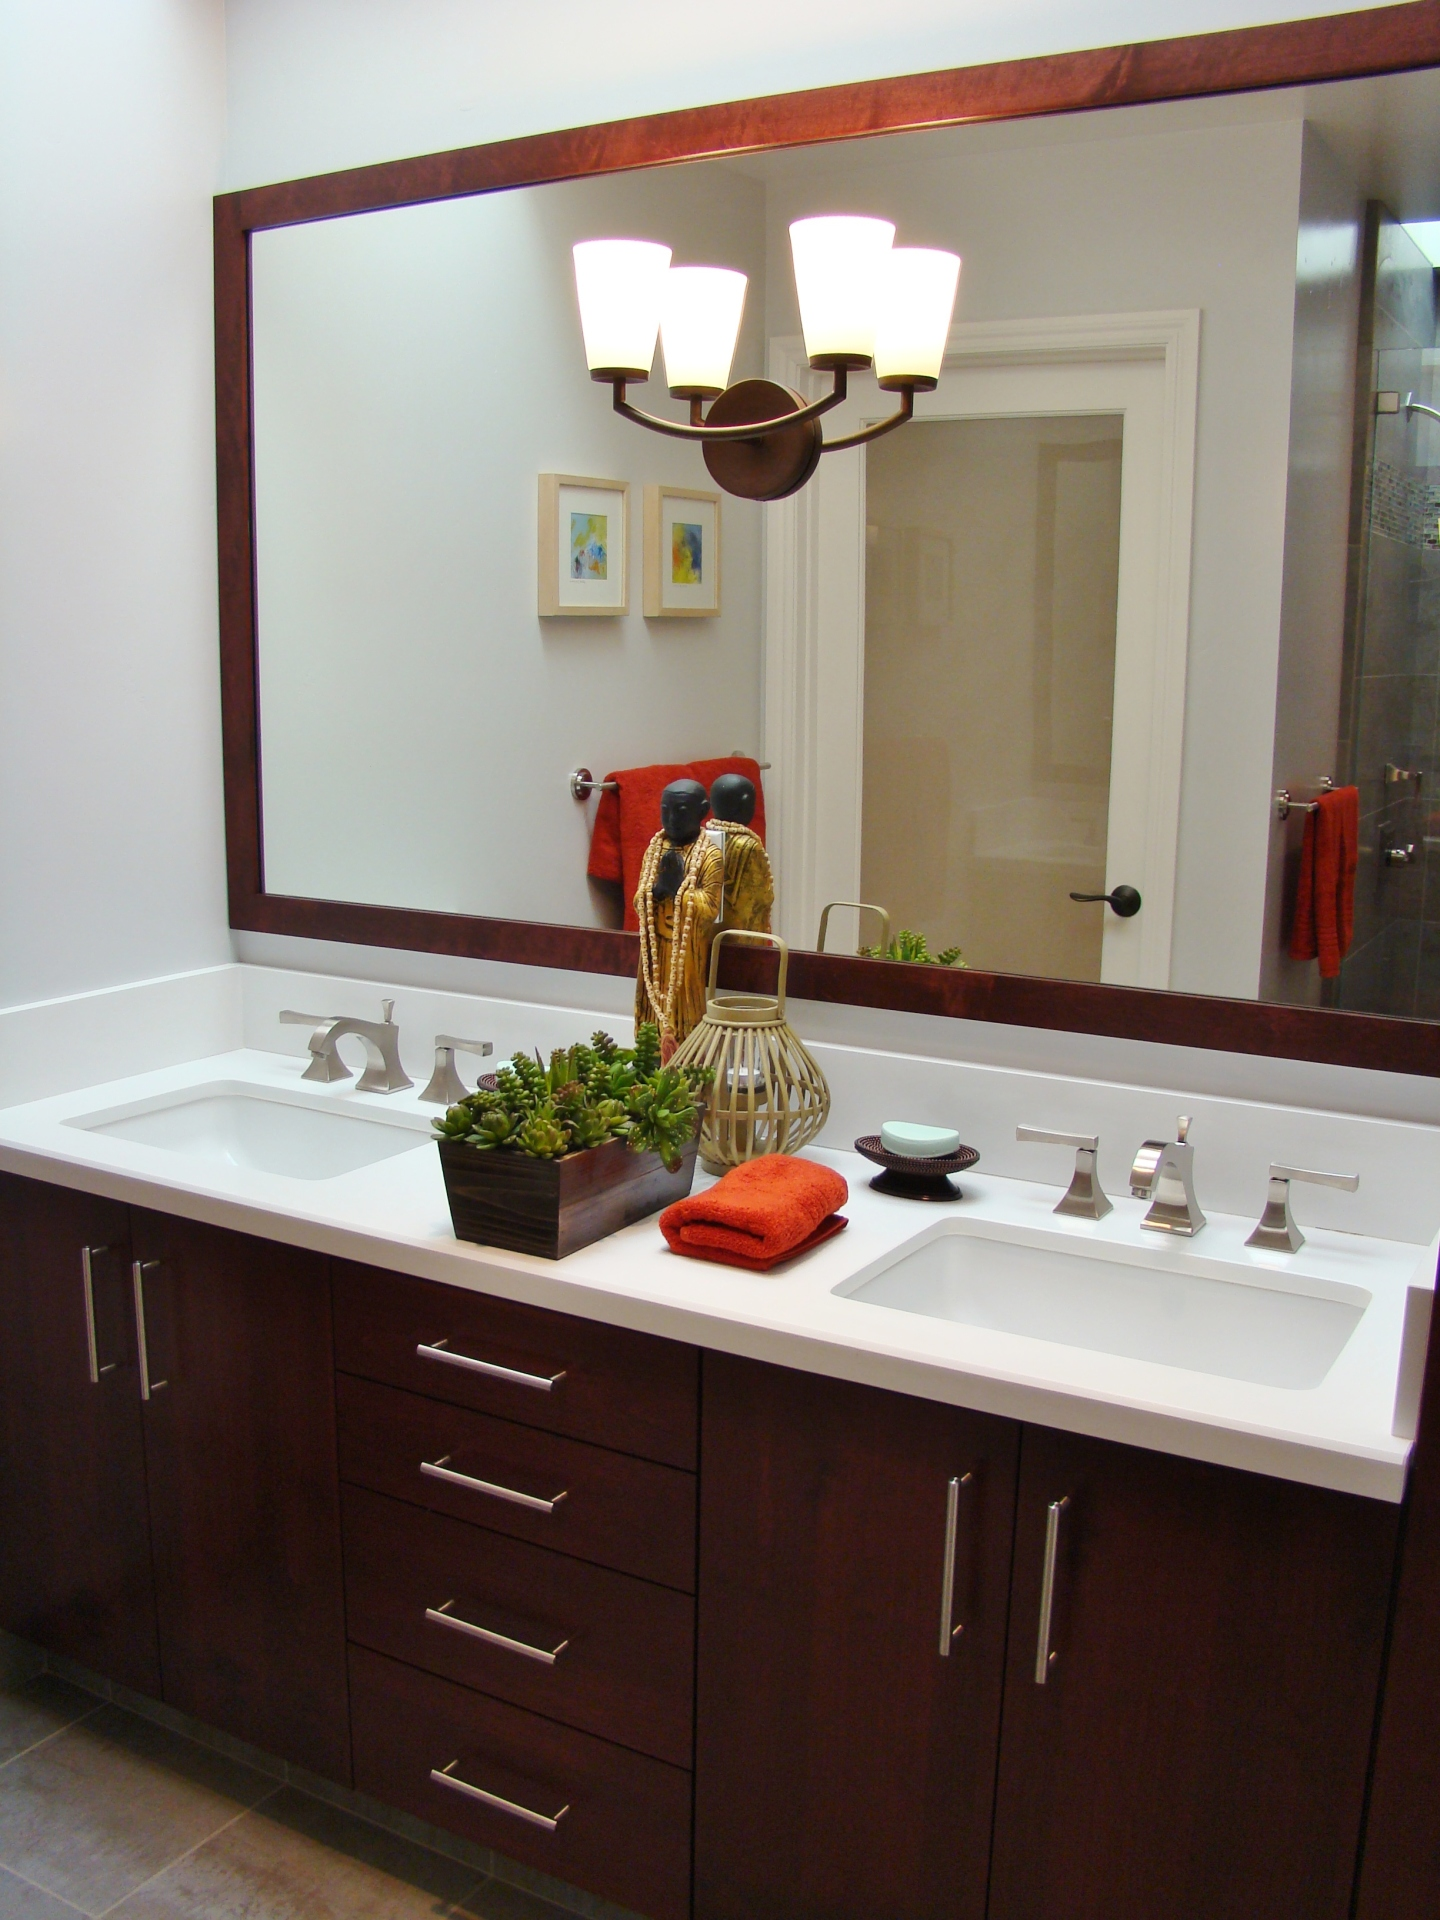 Fiorito Interior Design, interior design, remodel, bathroom, transitional, custom vanity, double sinks, framed mirror